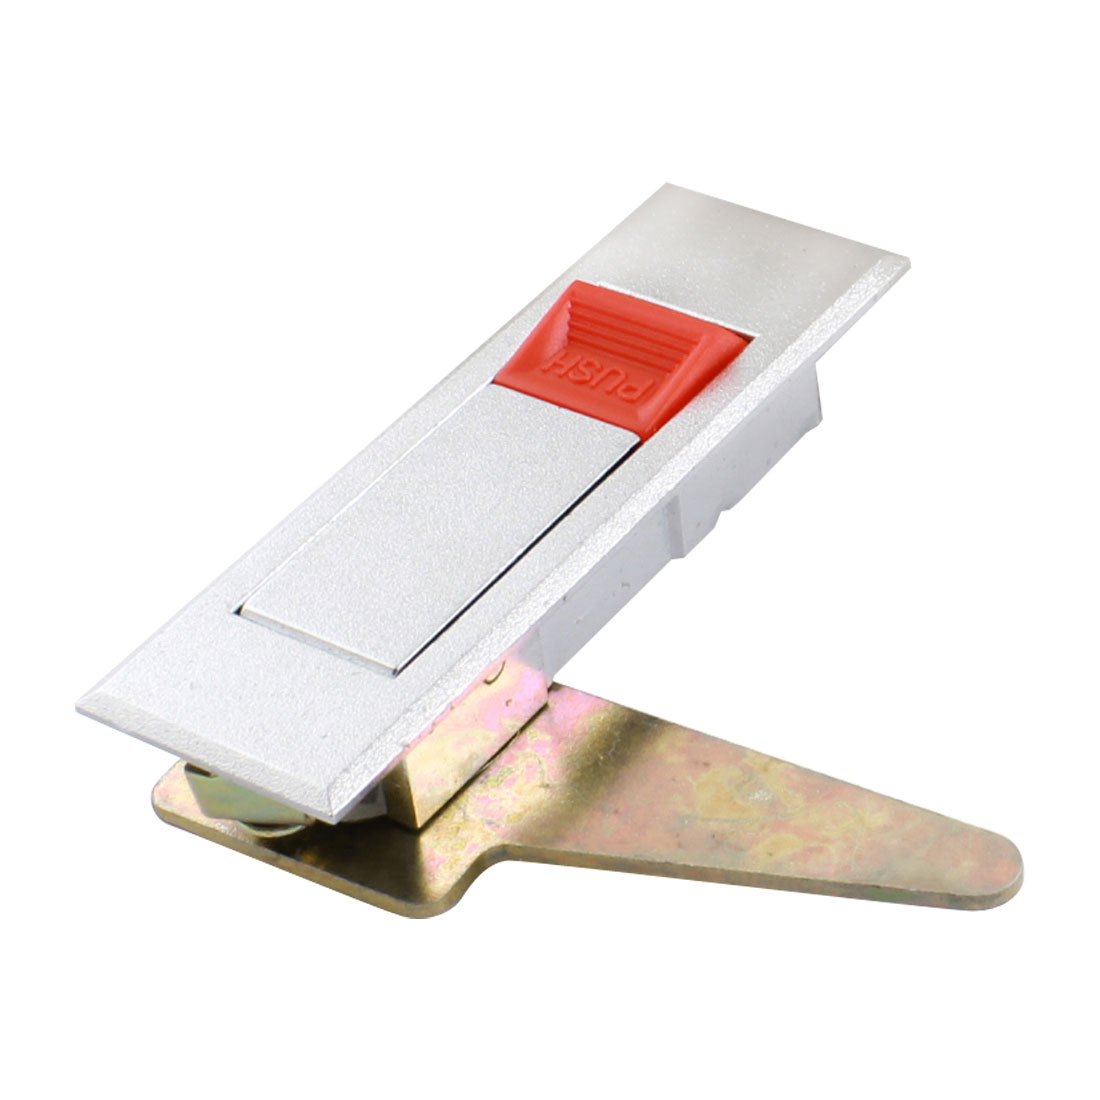 80mmx22mm Mounting Hole Metal Rectangle 45 Degree Pop-up Plane Lock for Electric Box Door Cabinet